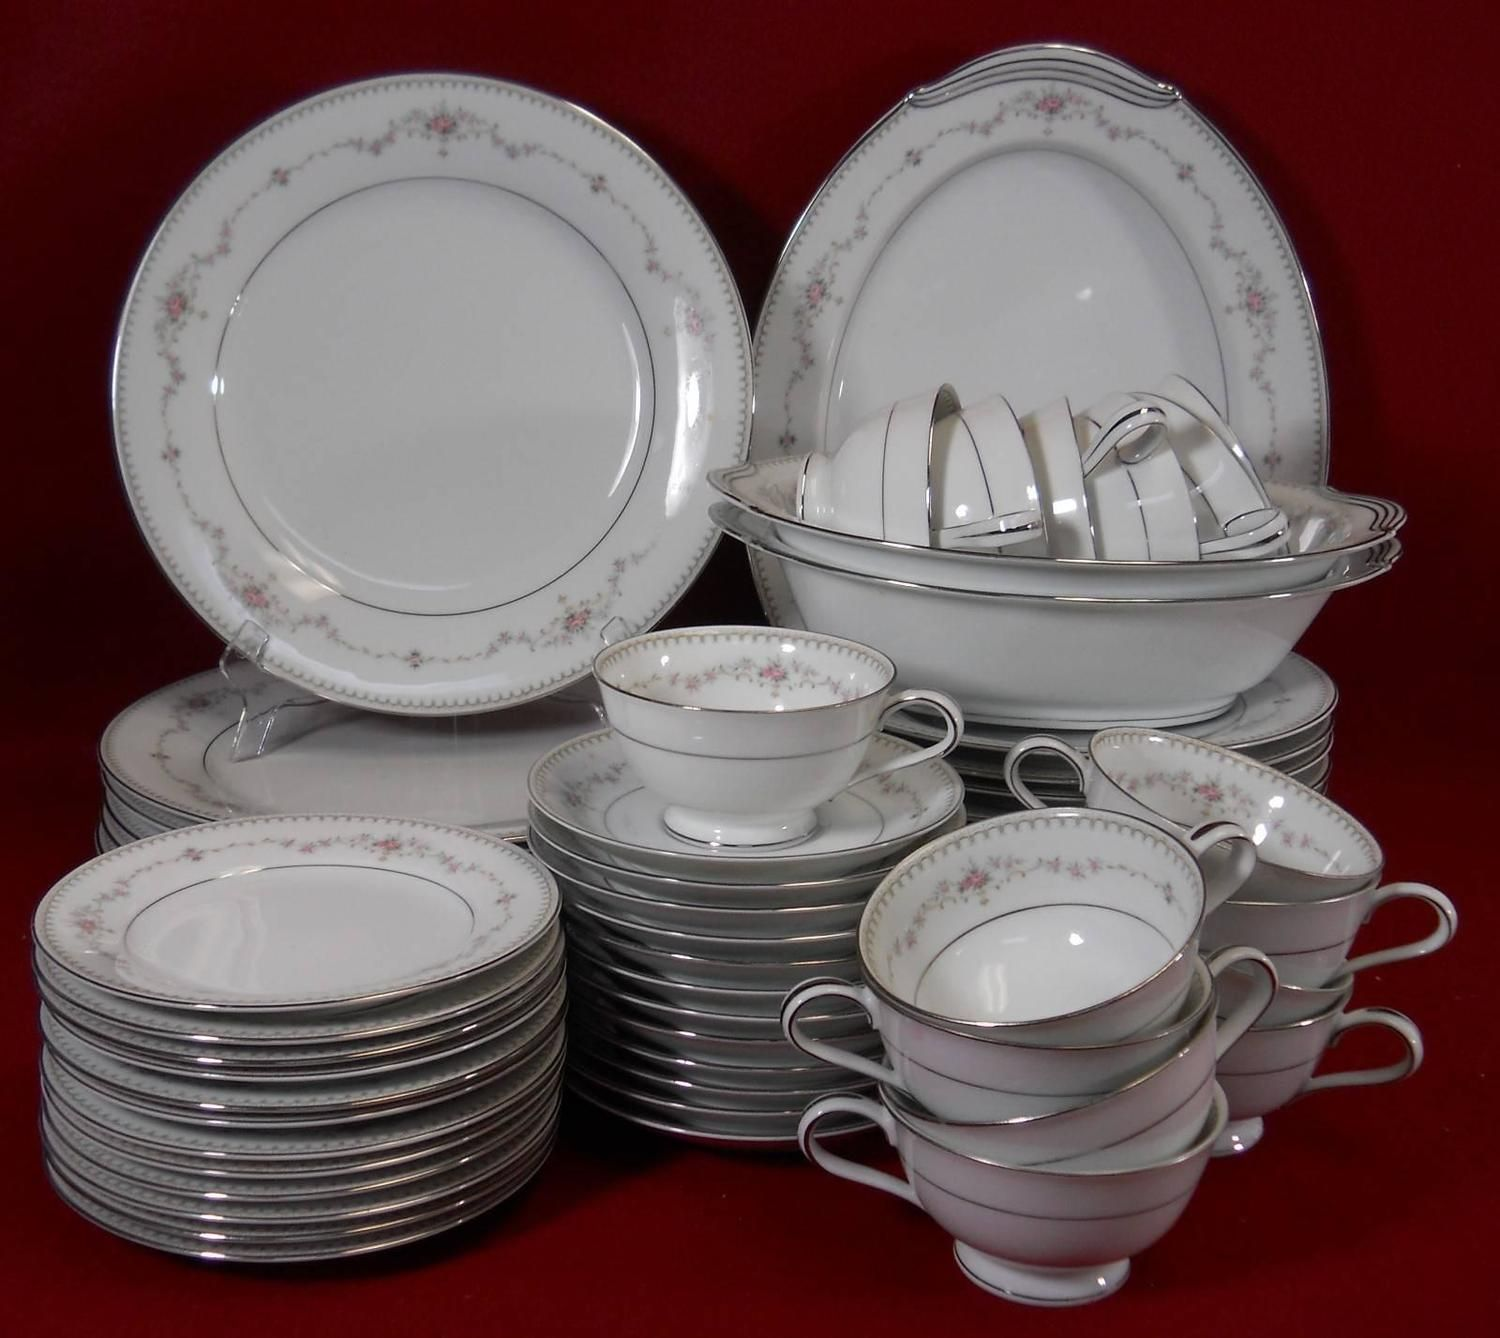 Noritake China Fairmont 6102 Pattern 62 Piece Set Service For Twelve 12 From A Unique Collection Of Vintage Tableware Noritake China Patterns Tableware